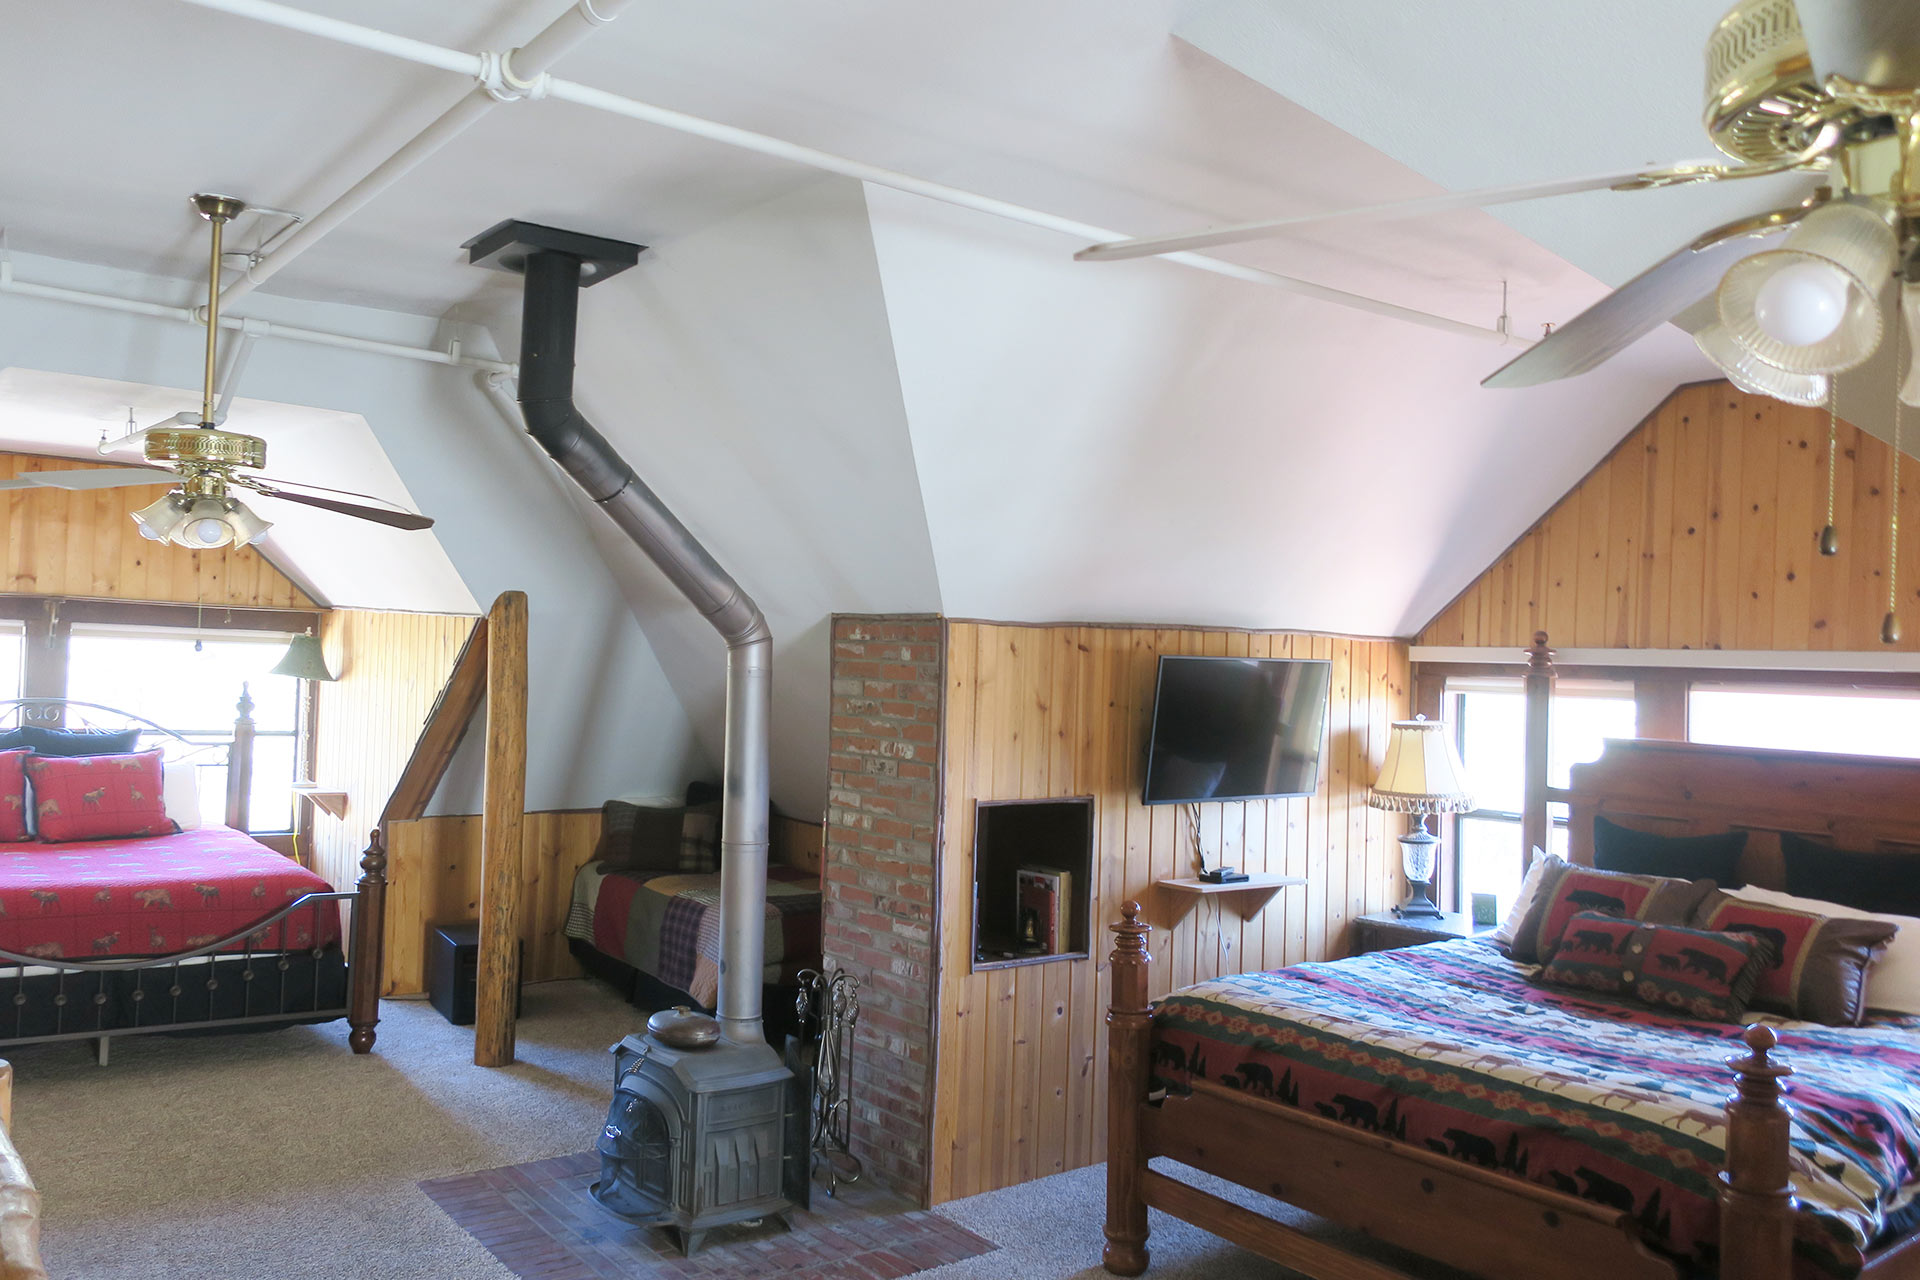 knickerbocker mansion master suite with two beds and cast iron stove